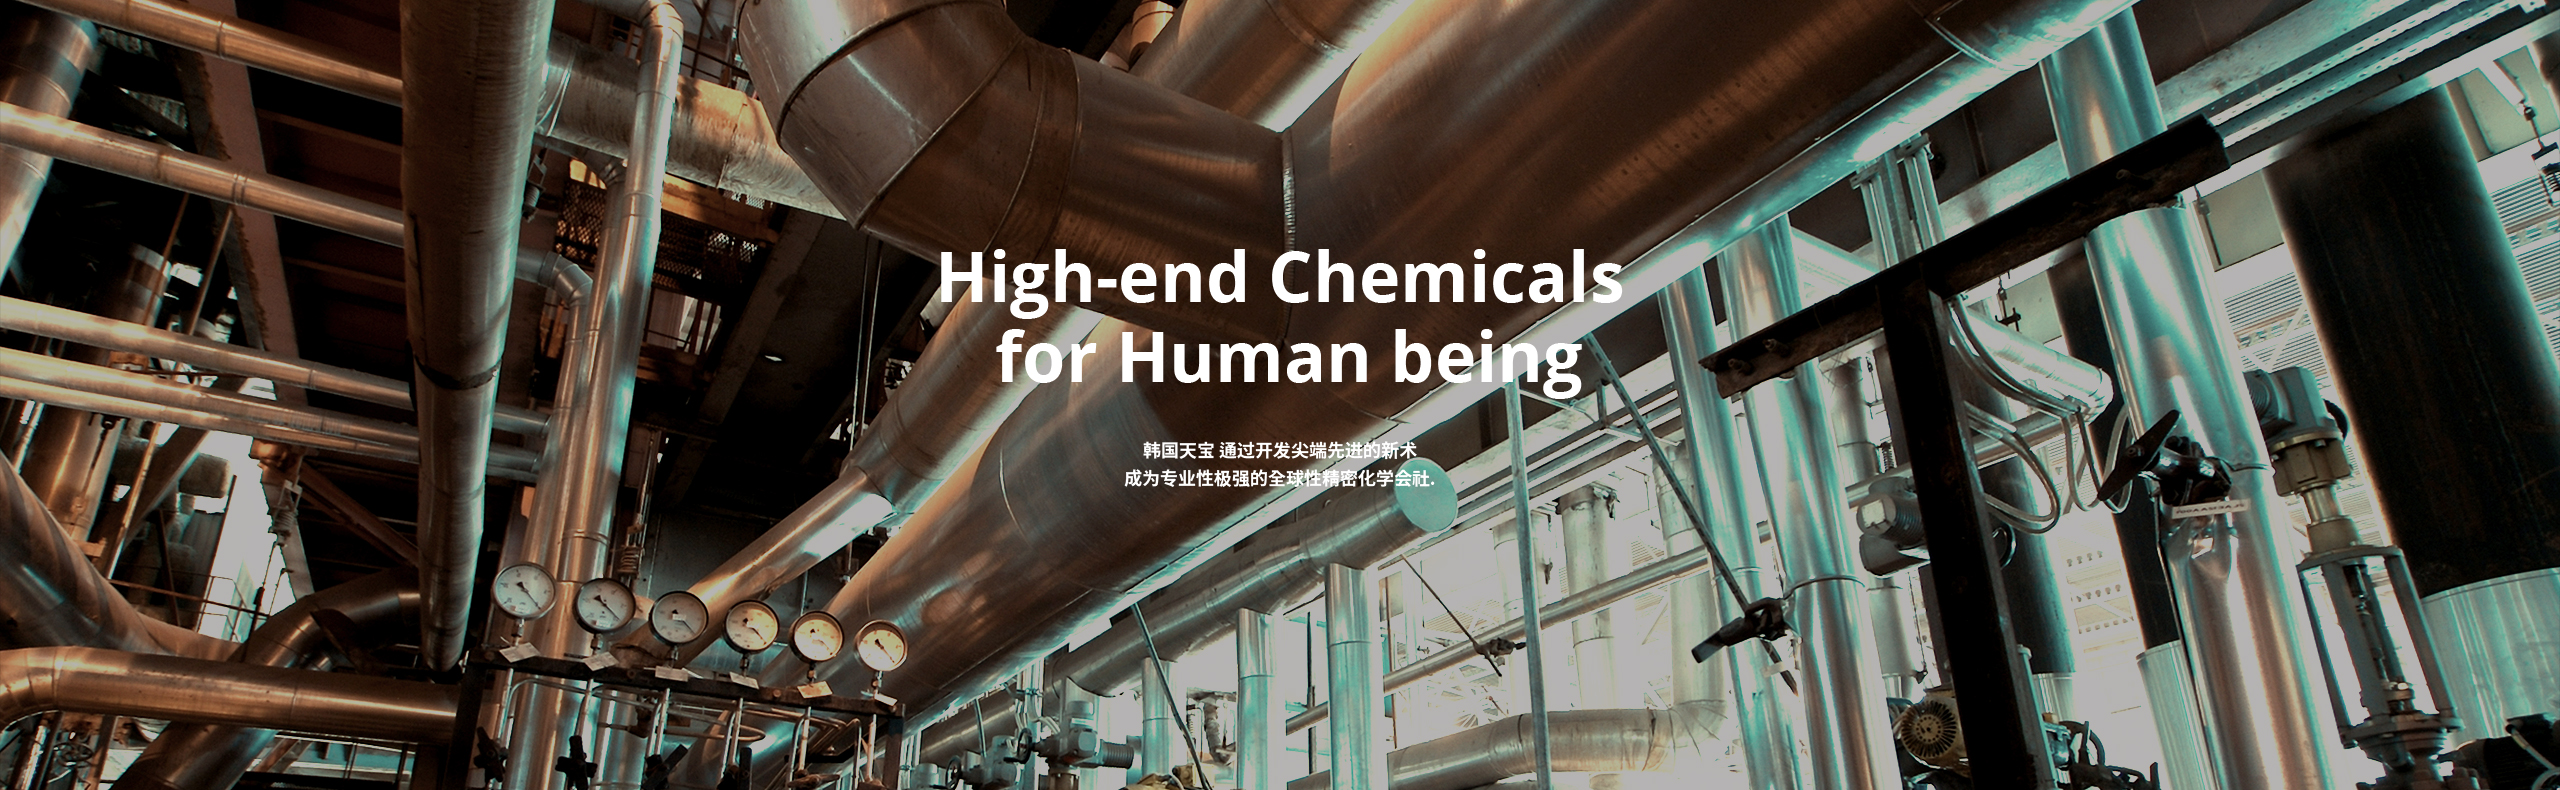 High-end Chemicals for Human being